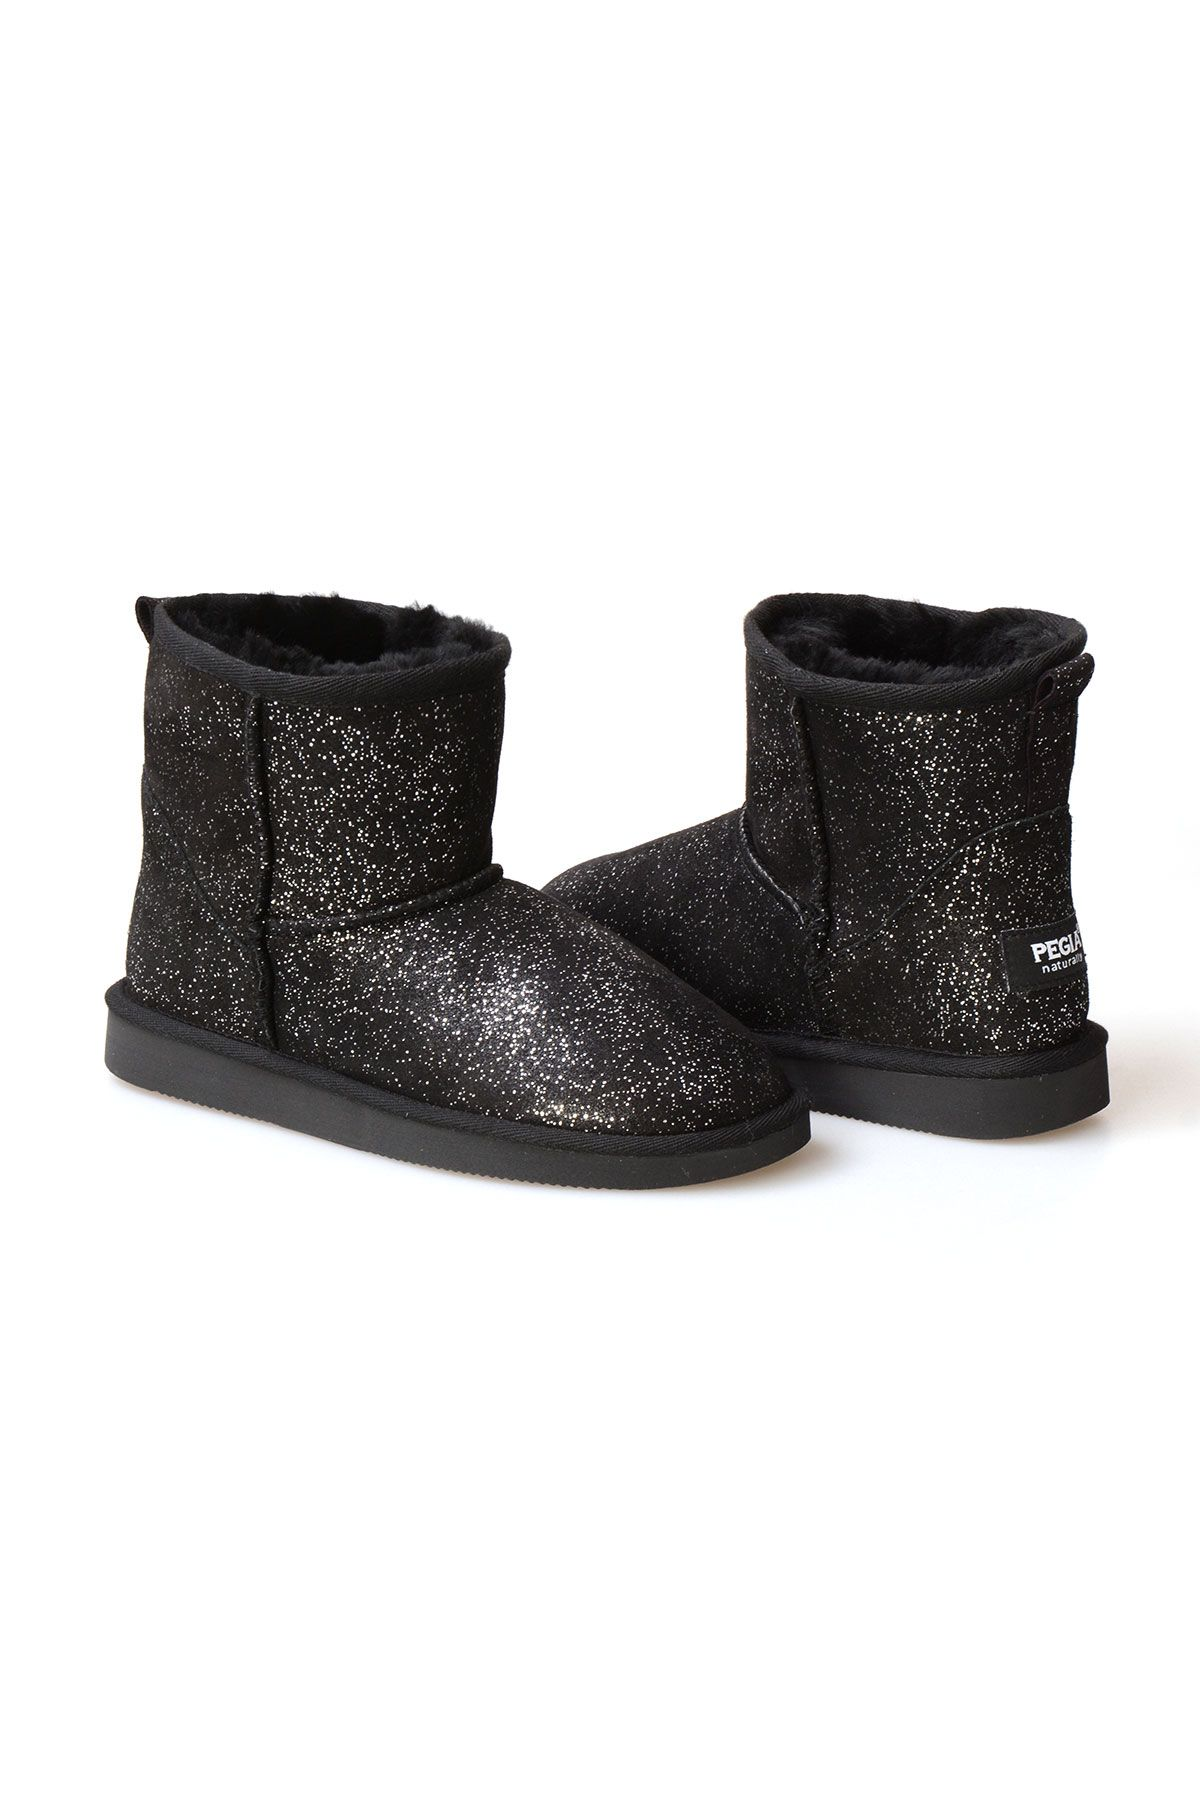 Pegia Genuine Sheepskin Galaxy Printed Women's Ankle Boots 191029 Black